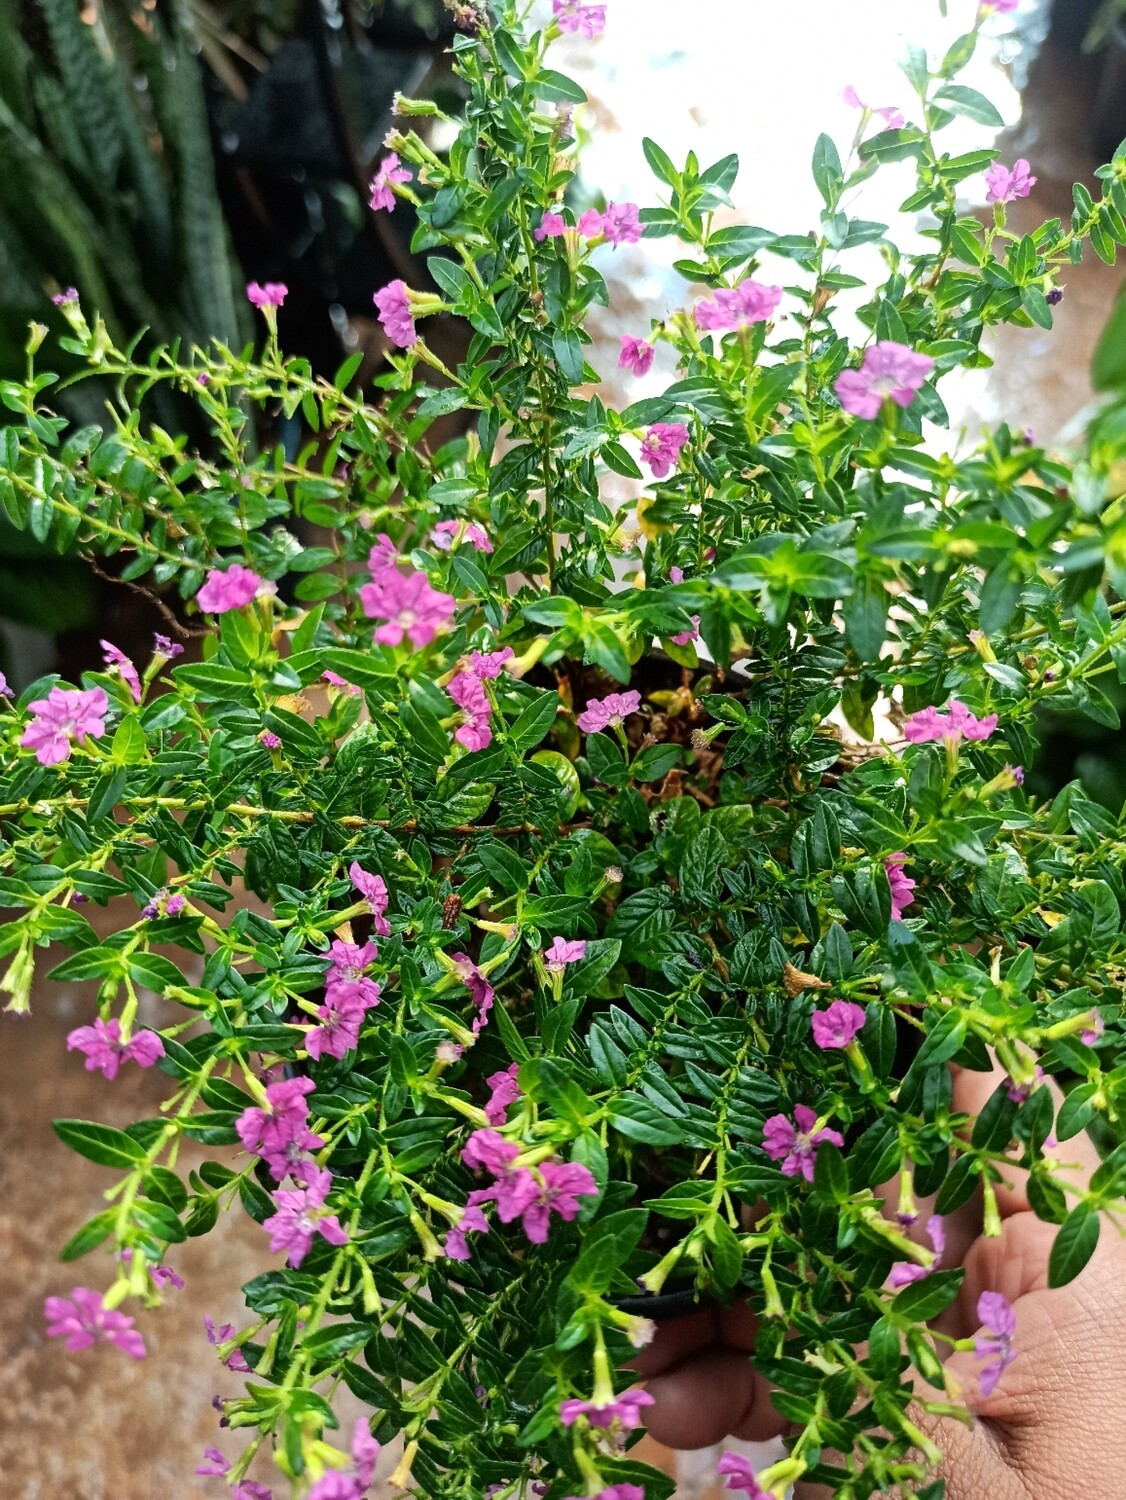 Cuphea - Mexican Heather pink